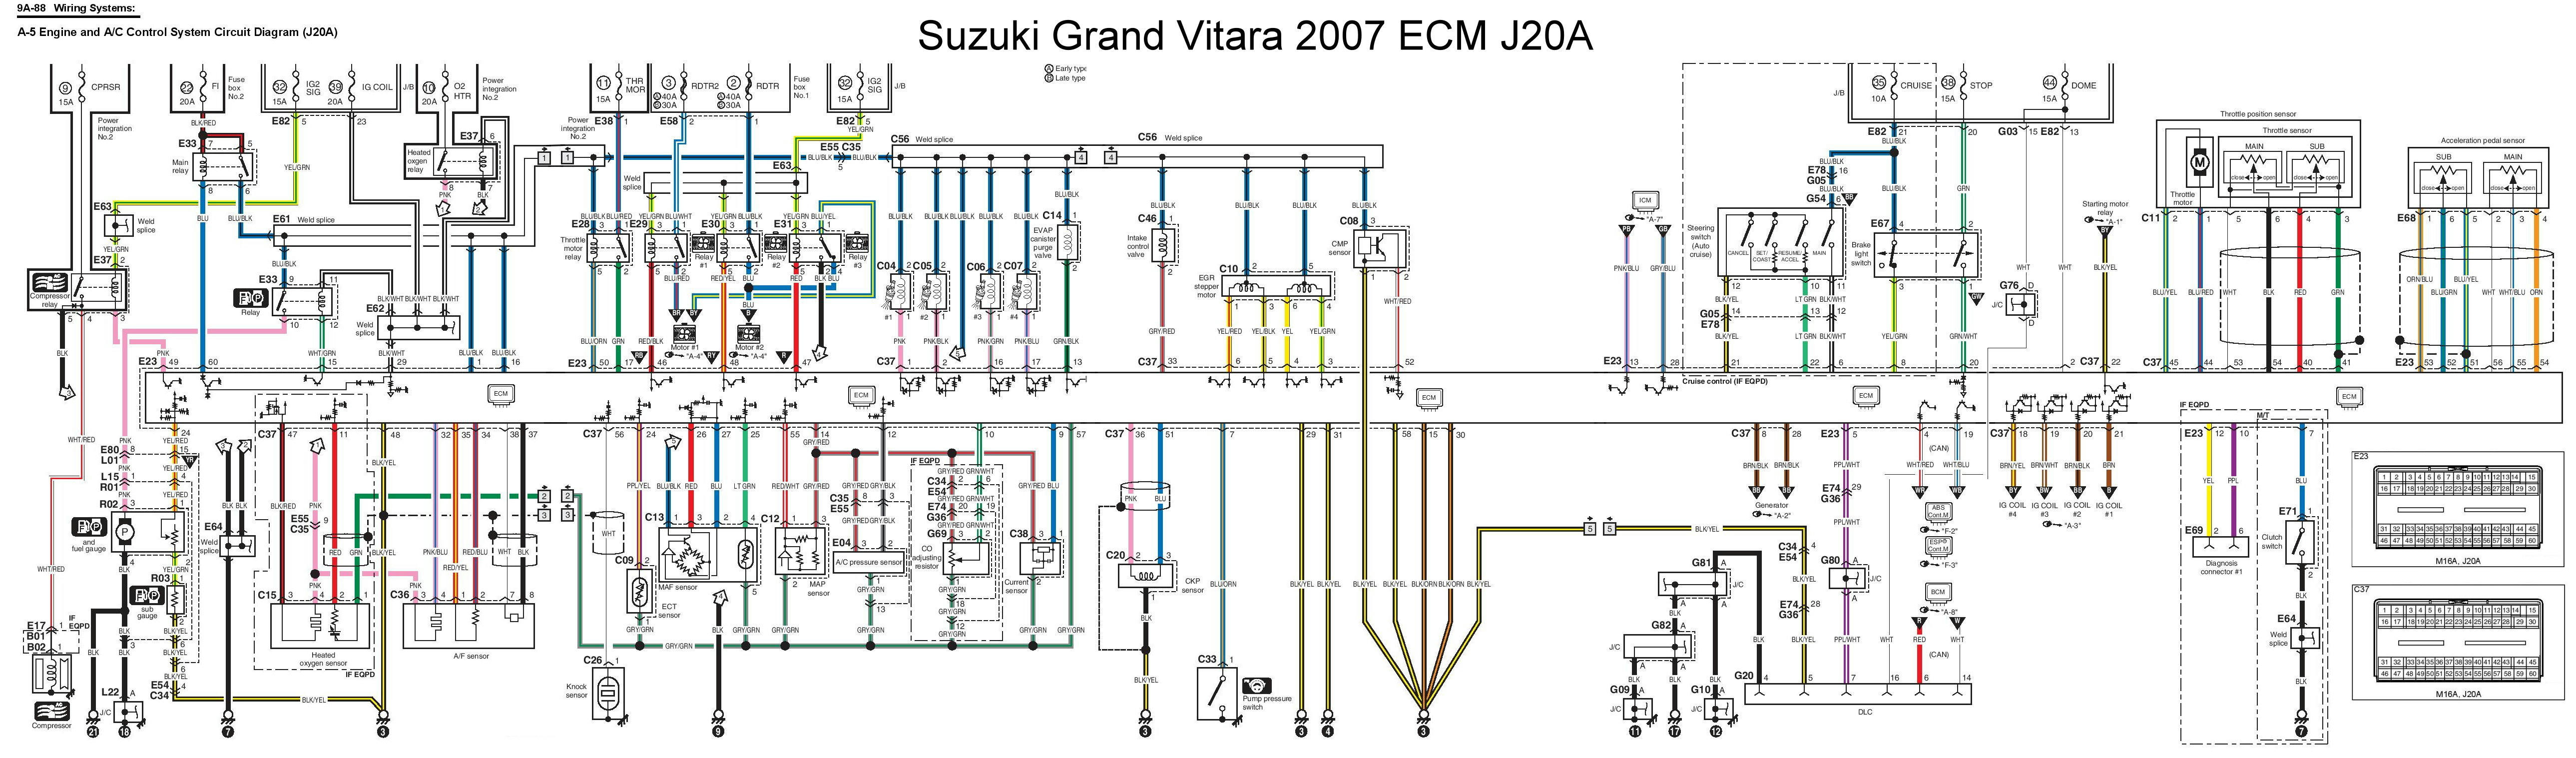 q8c21w9944rm9l5zg grand vitara j20a ecu pinouts suzuki forums suzuki forum site suzuki verona wiring diagram at reclaimingppi.co